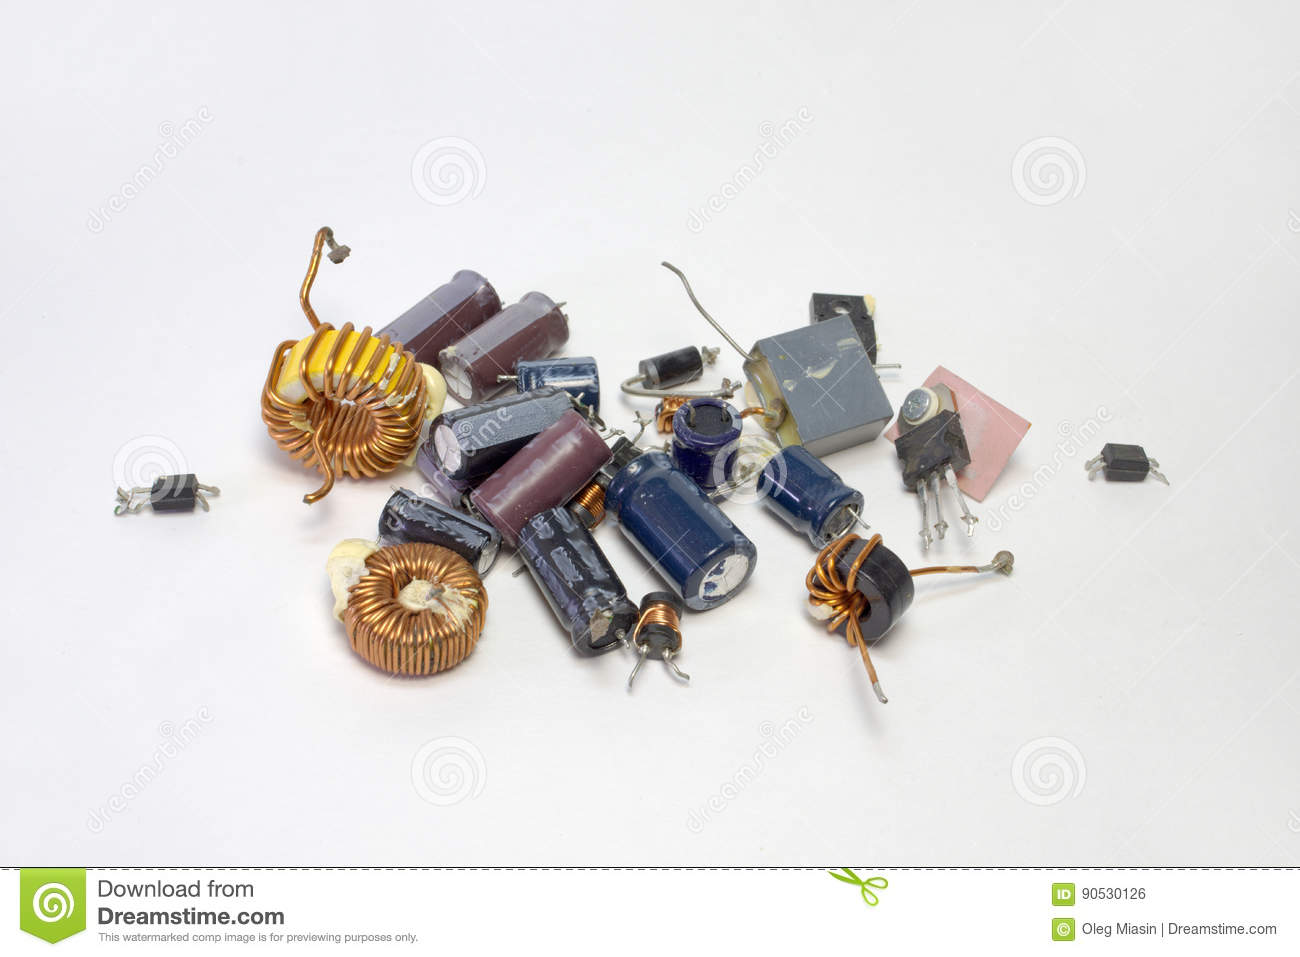 Bunch Of Electronic Parts Capacitors Transistors Inductors Stock Coils Copper Wire Are Commonly Used In Electrical